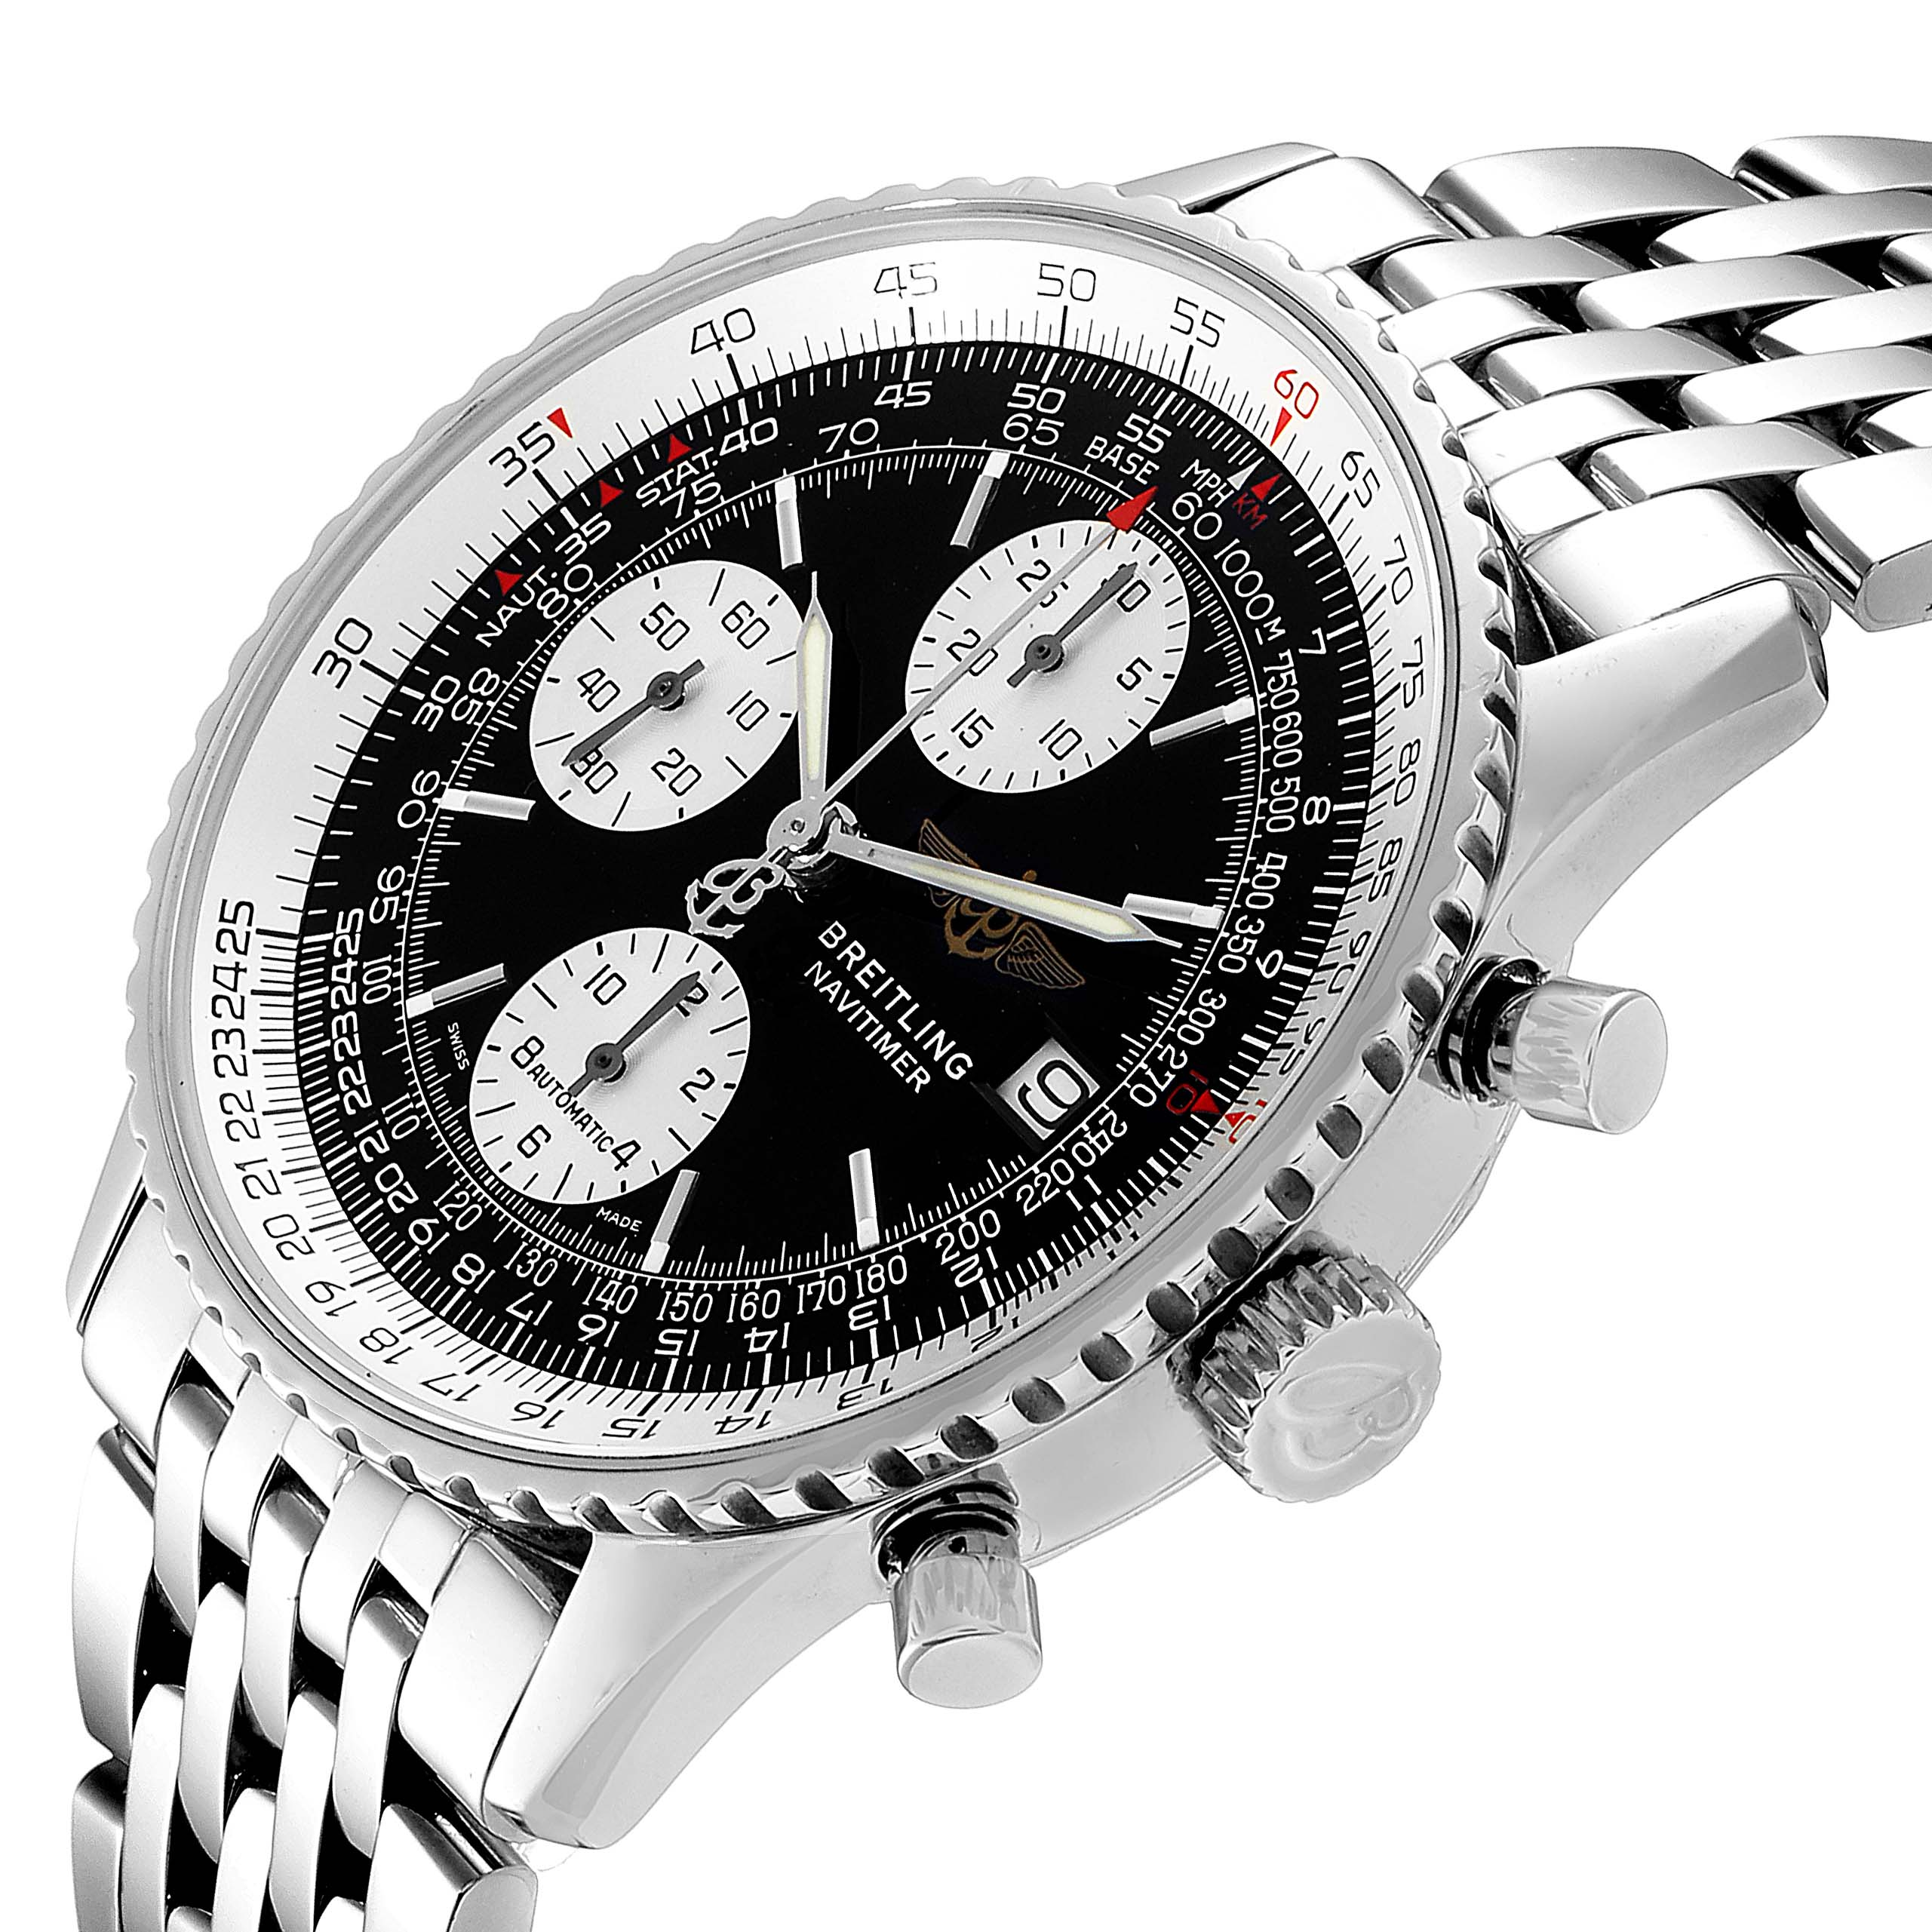 Breitling Navitimer II Black Dial Chronograph Mens Watch A13322 Box SwissWatchExpo